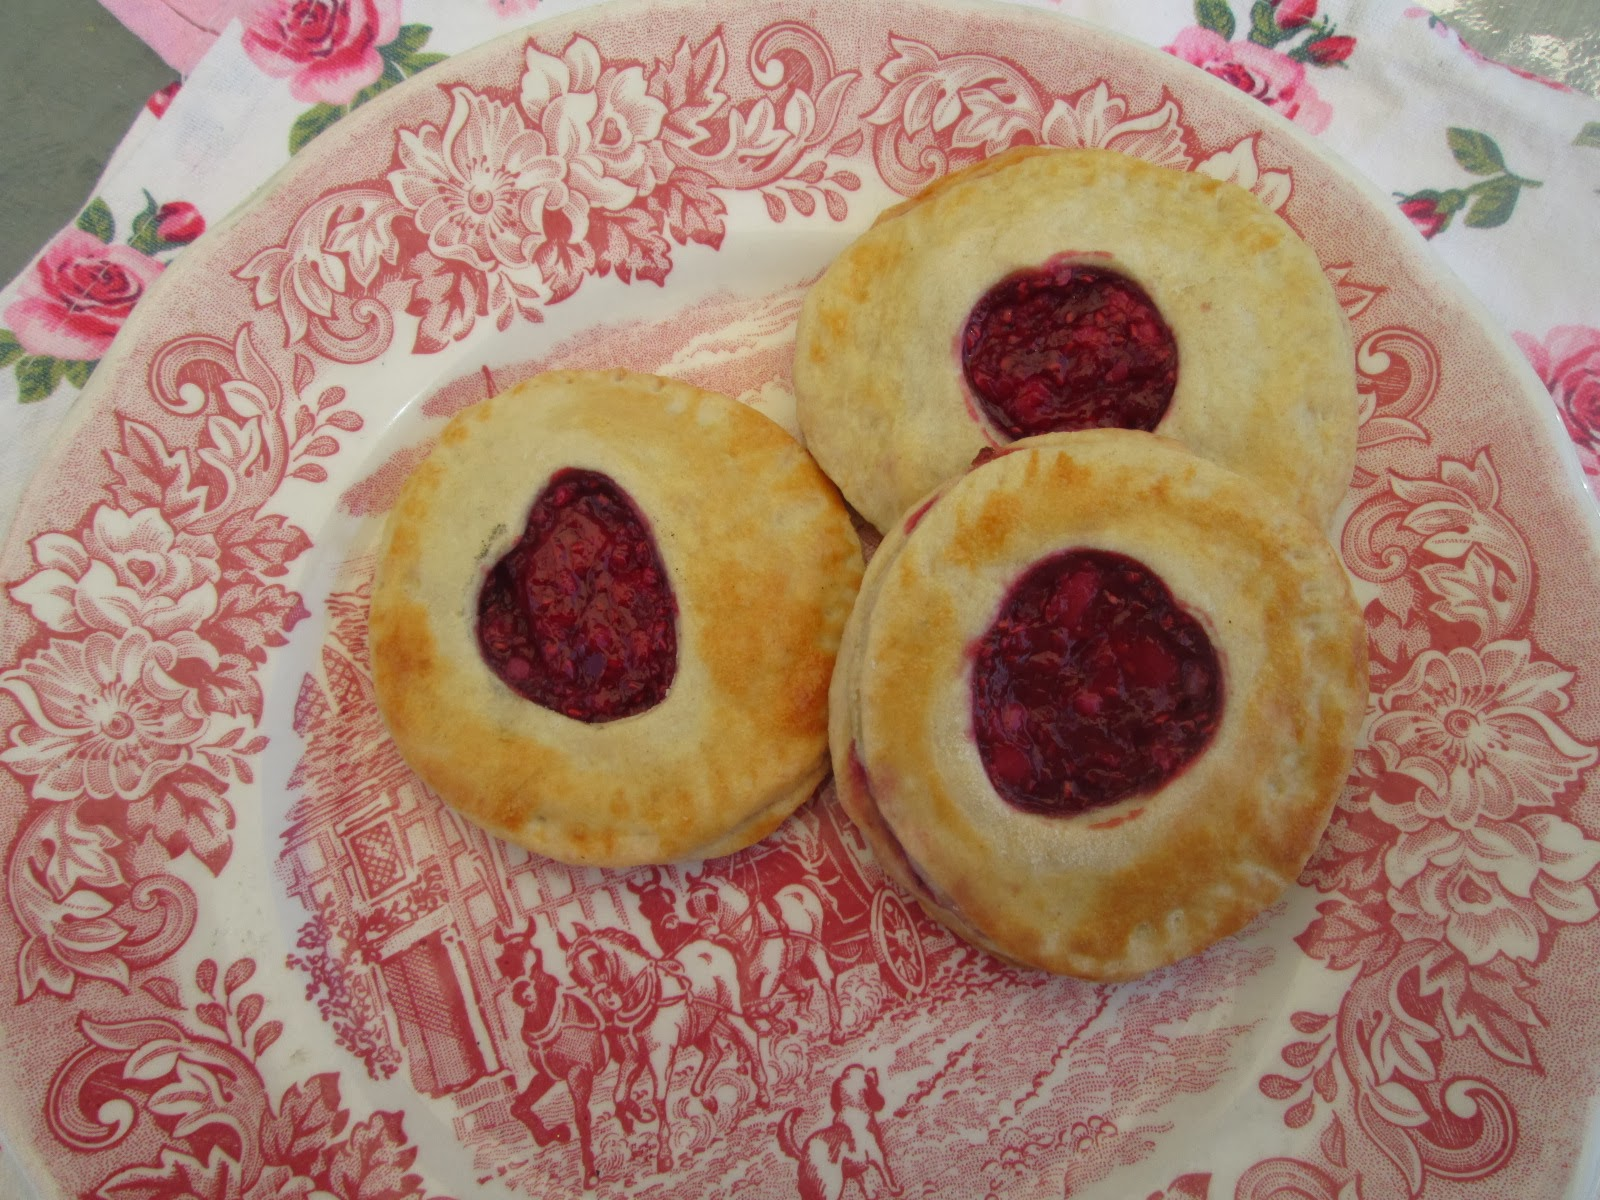 Canela kitchen: Little raspberry and mascarpone pies